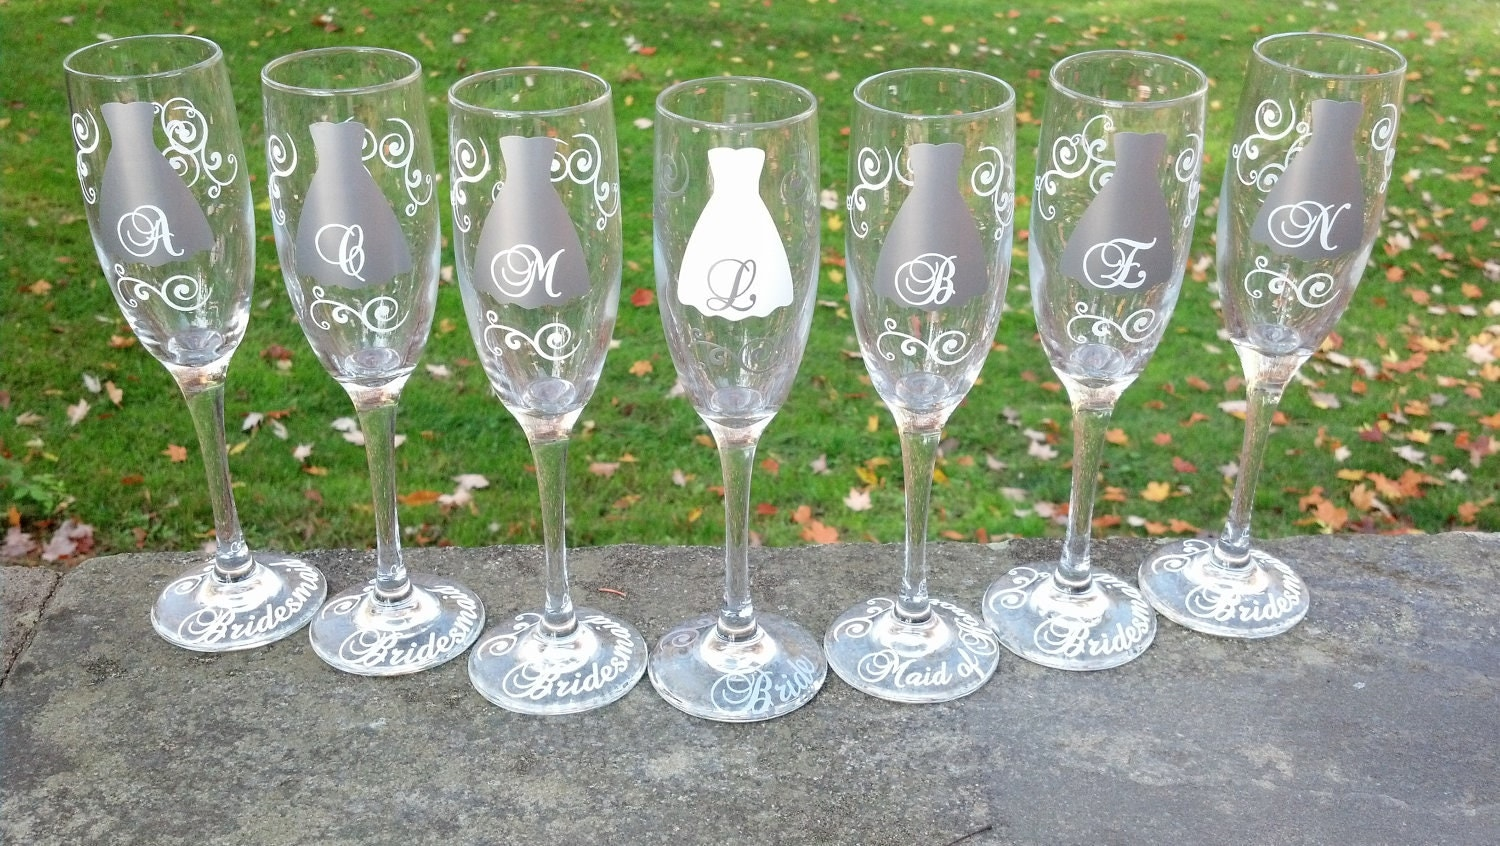 10 Bridesmaids Champagne Flutes Personalized Glasses Silver